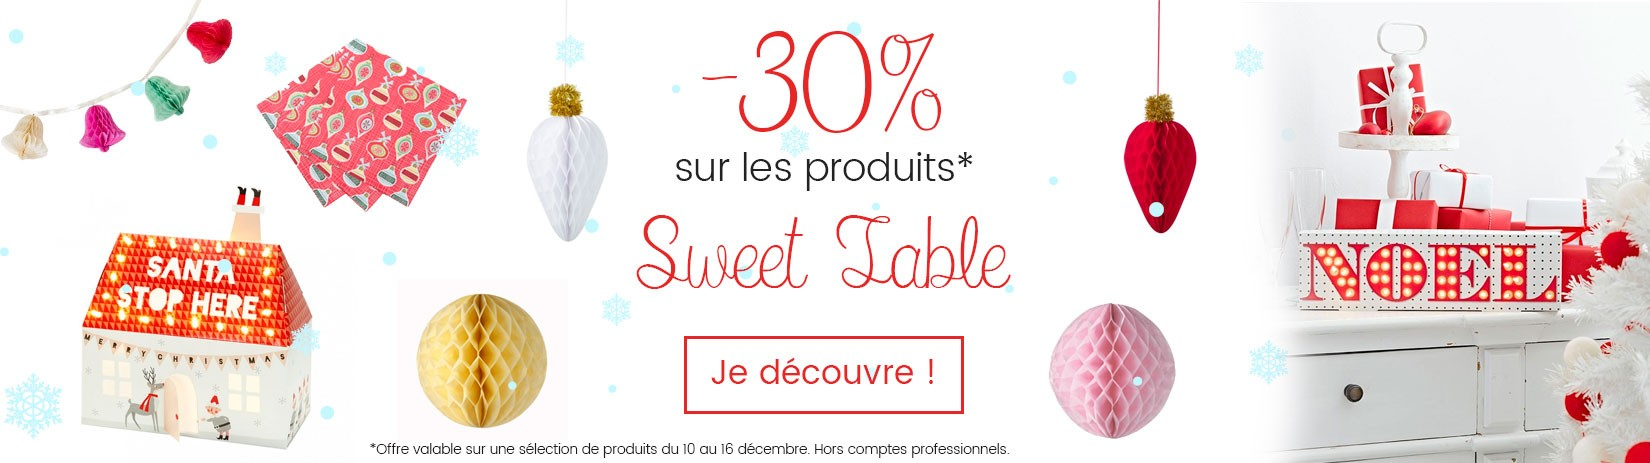 Offre sweet table